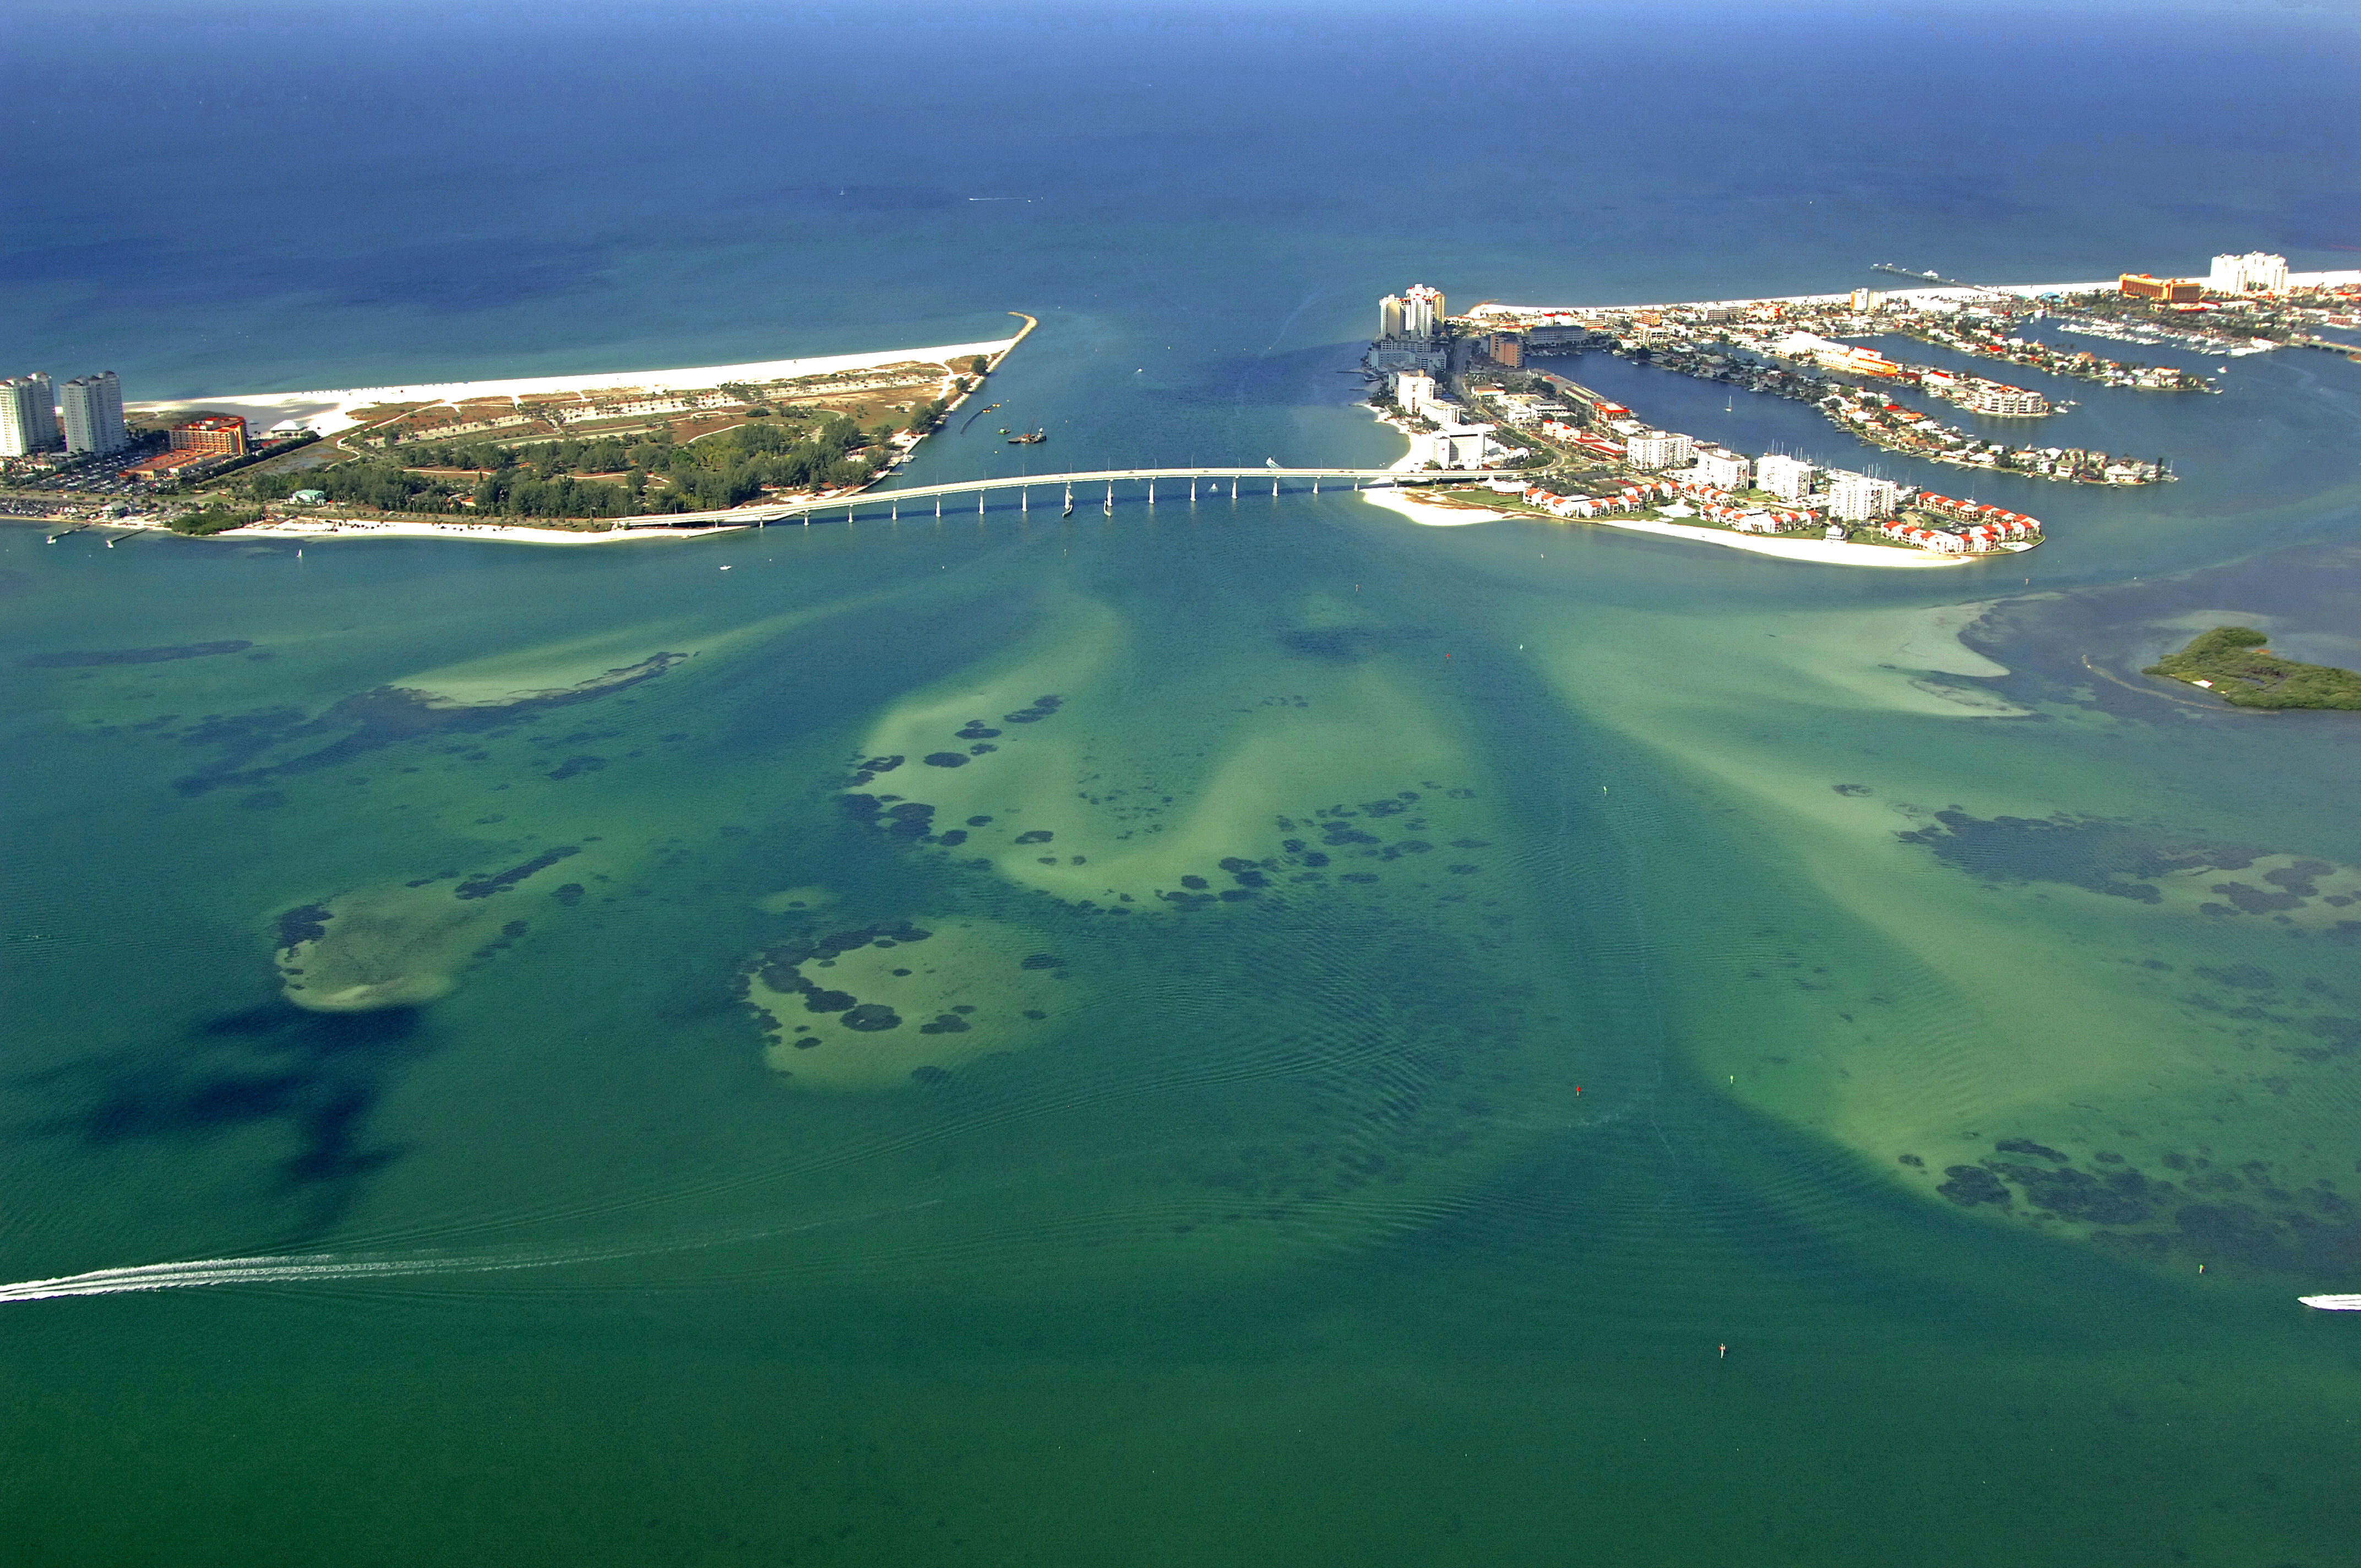 Clearwater Harbor In Clearwater FL United States